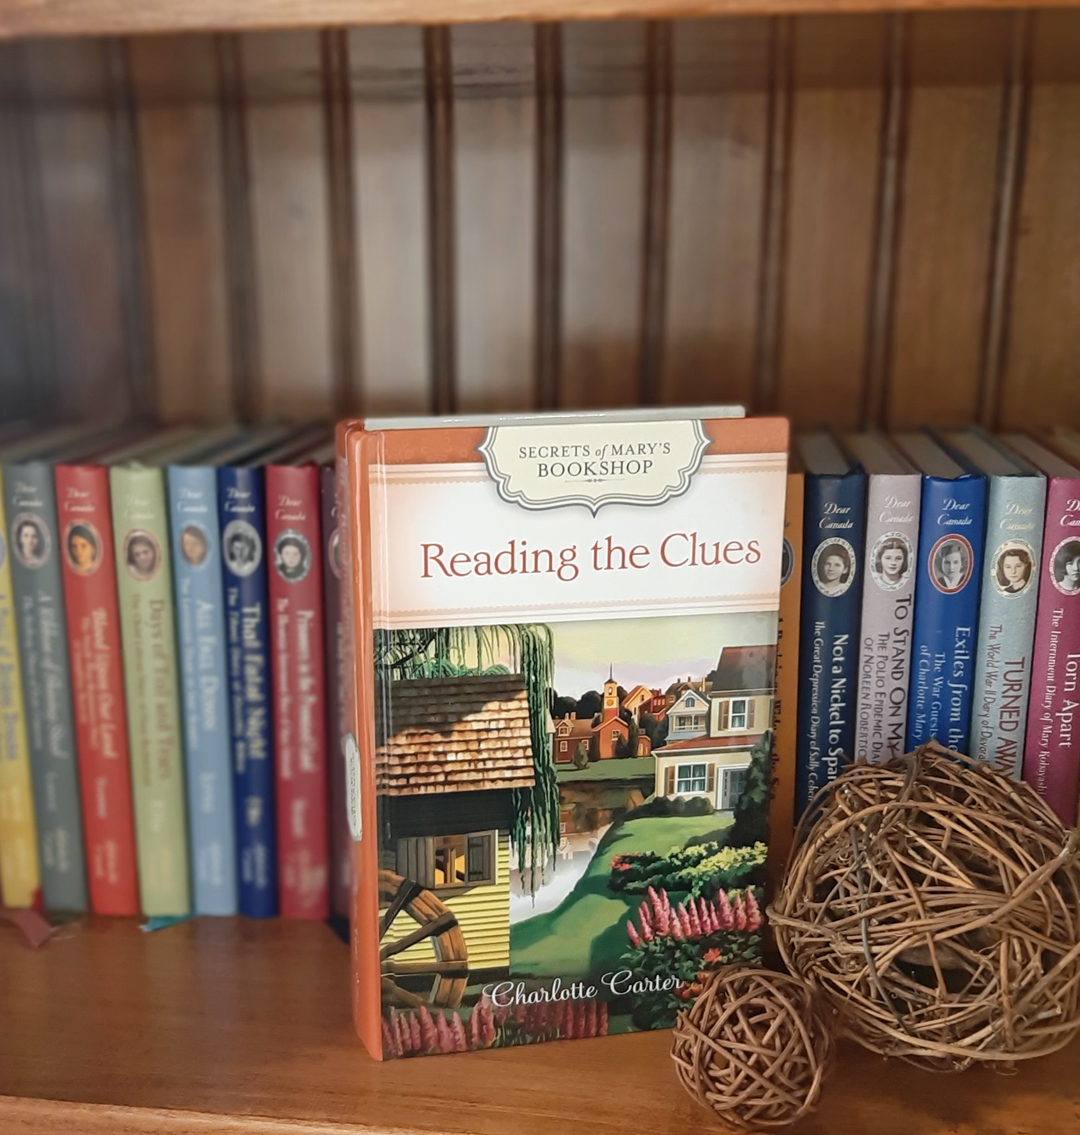 Charlotte Carter – Reading the Clues (Secrets of Mary's Bookshop #3)